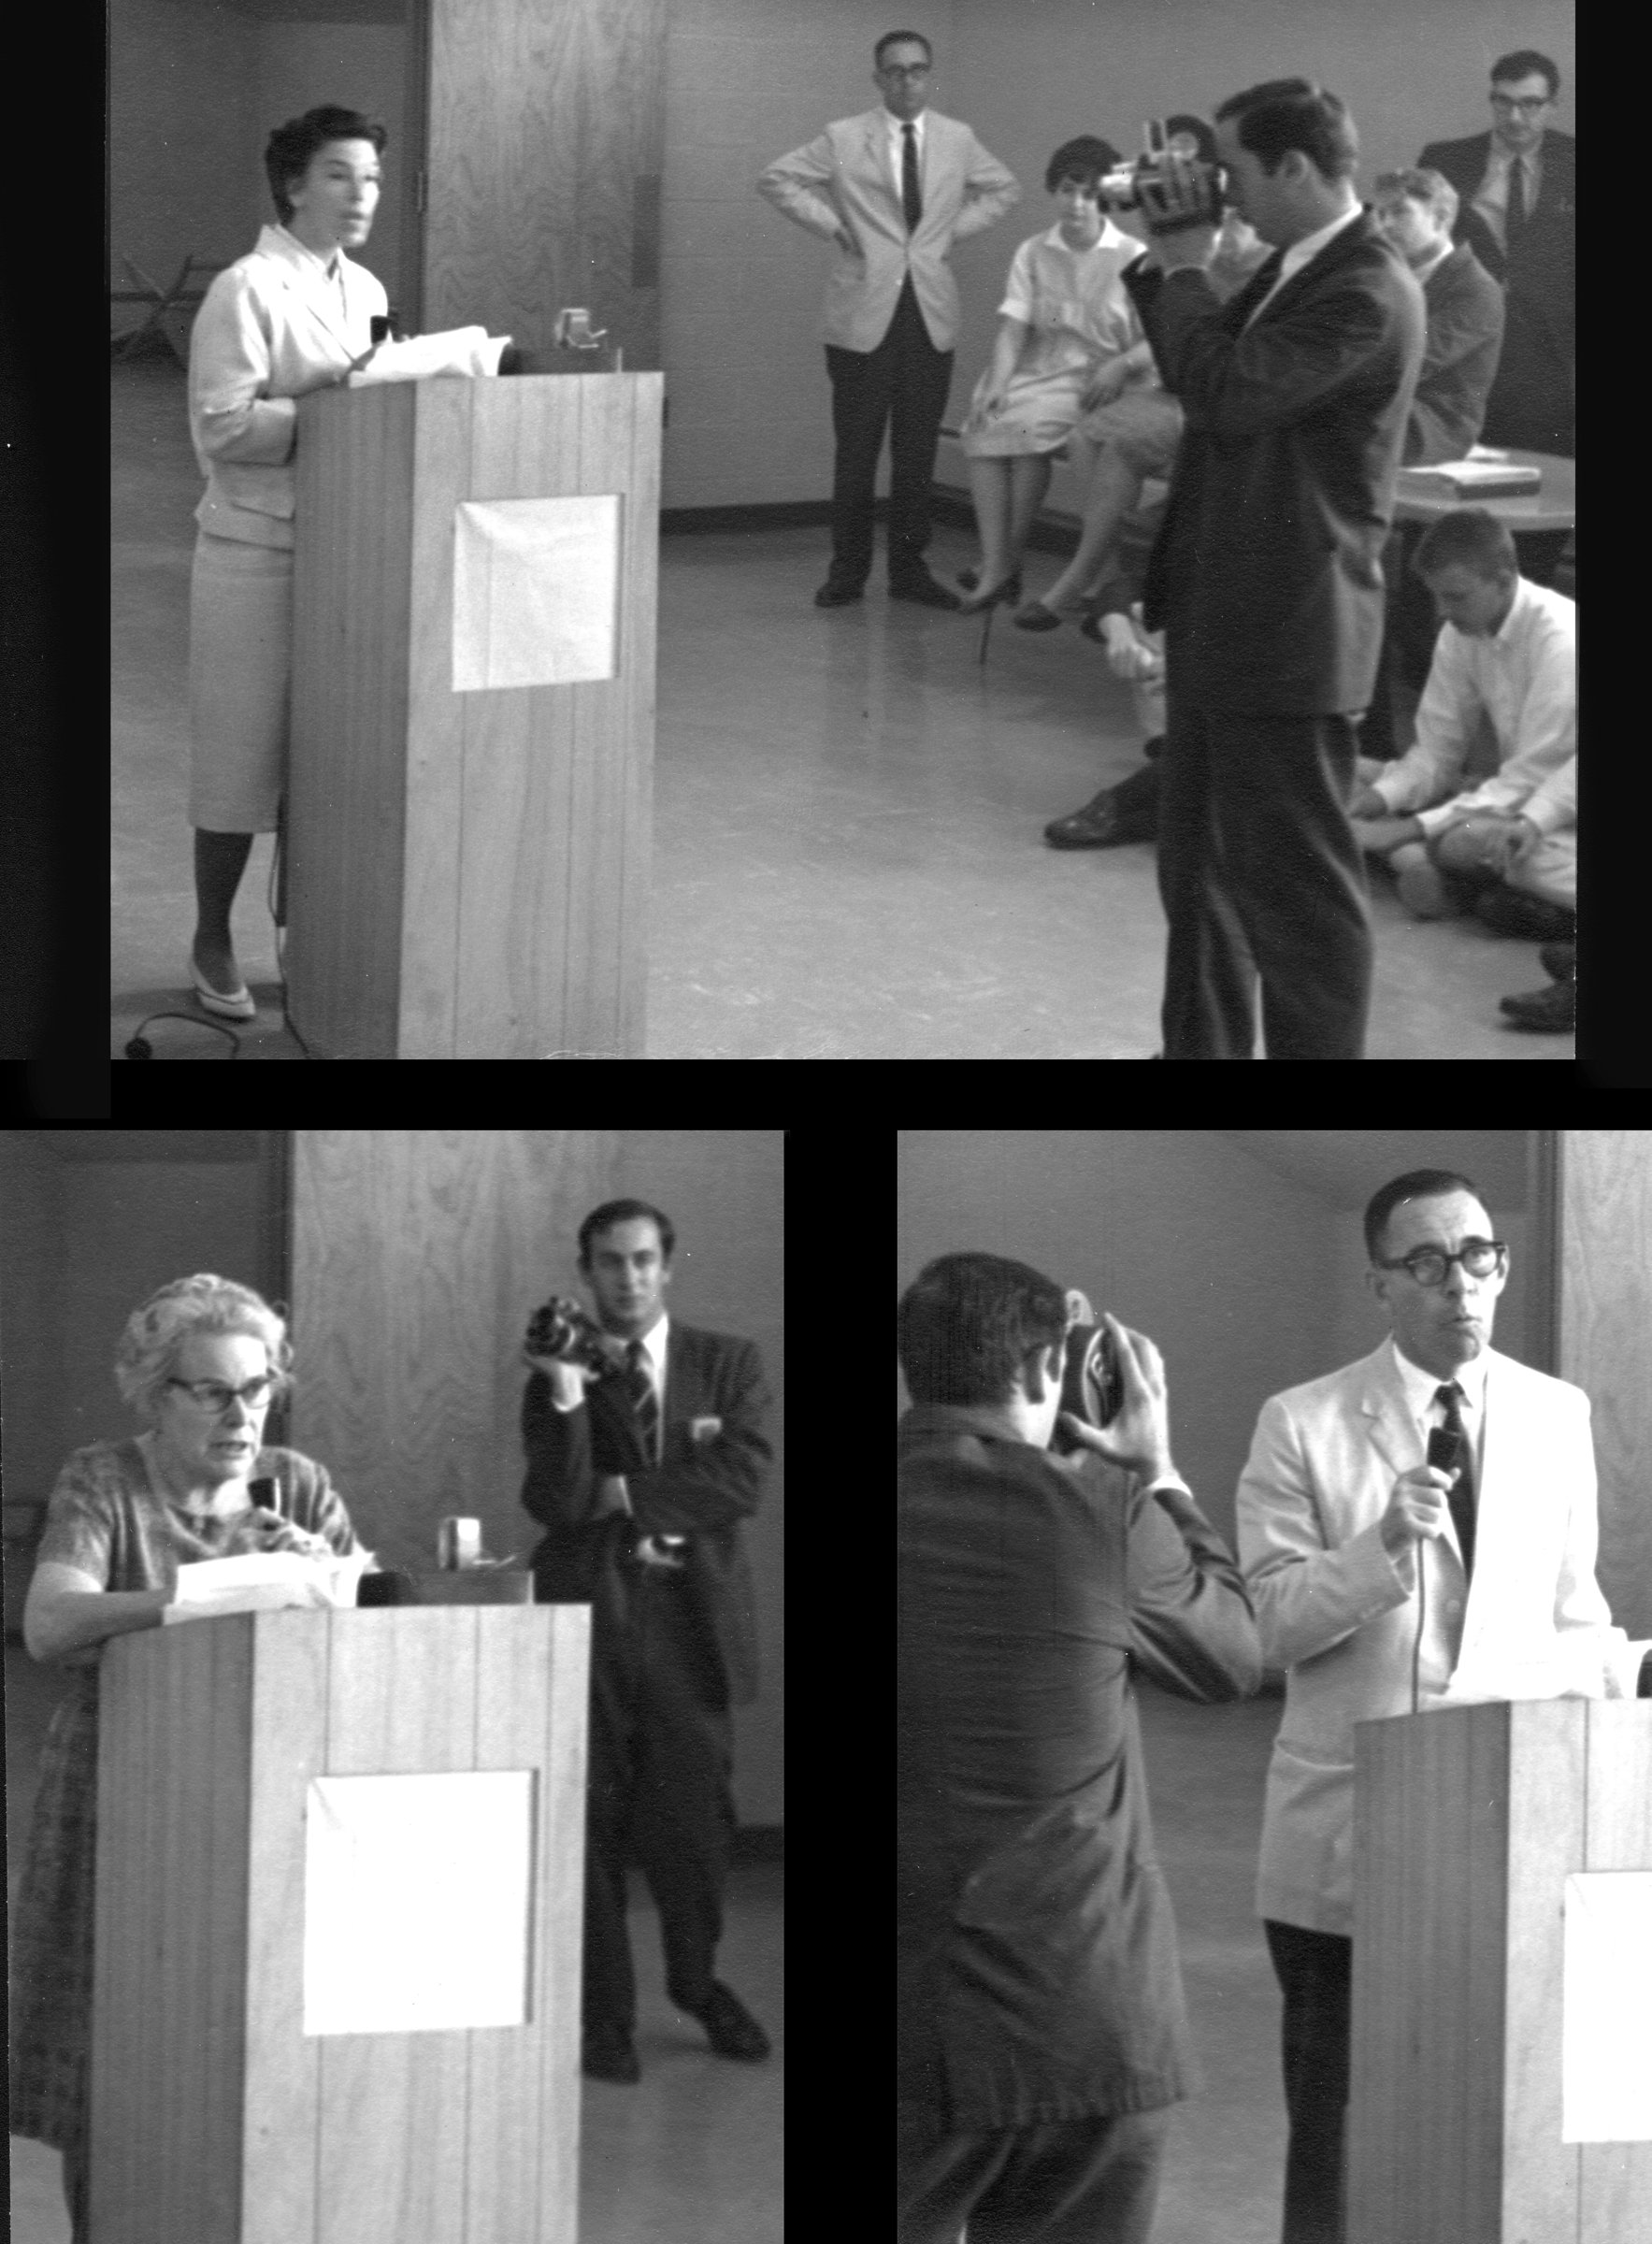 May 20, 1965, five full-time Ph.D, the core of the faculty [hold] a press conference to announce resignations in a dispute with Dr. Robert Reid, Director.